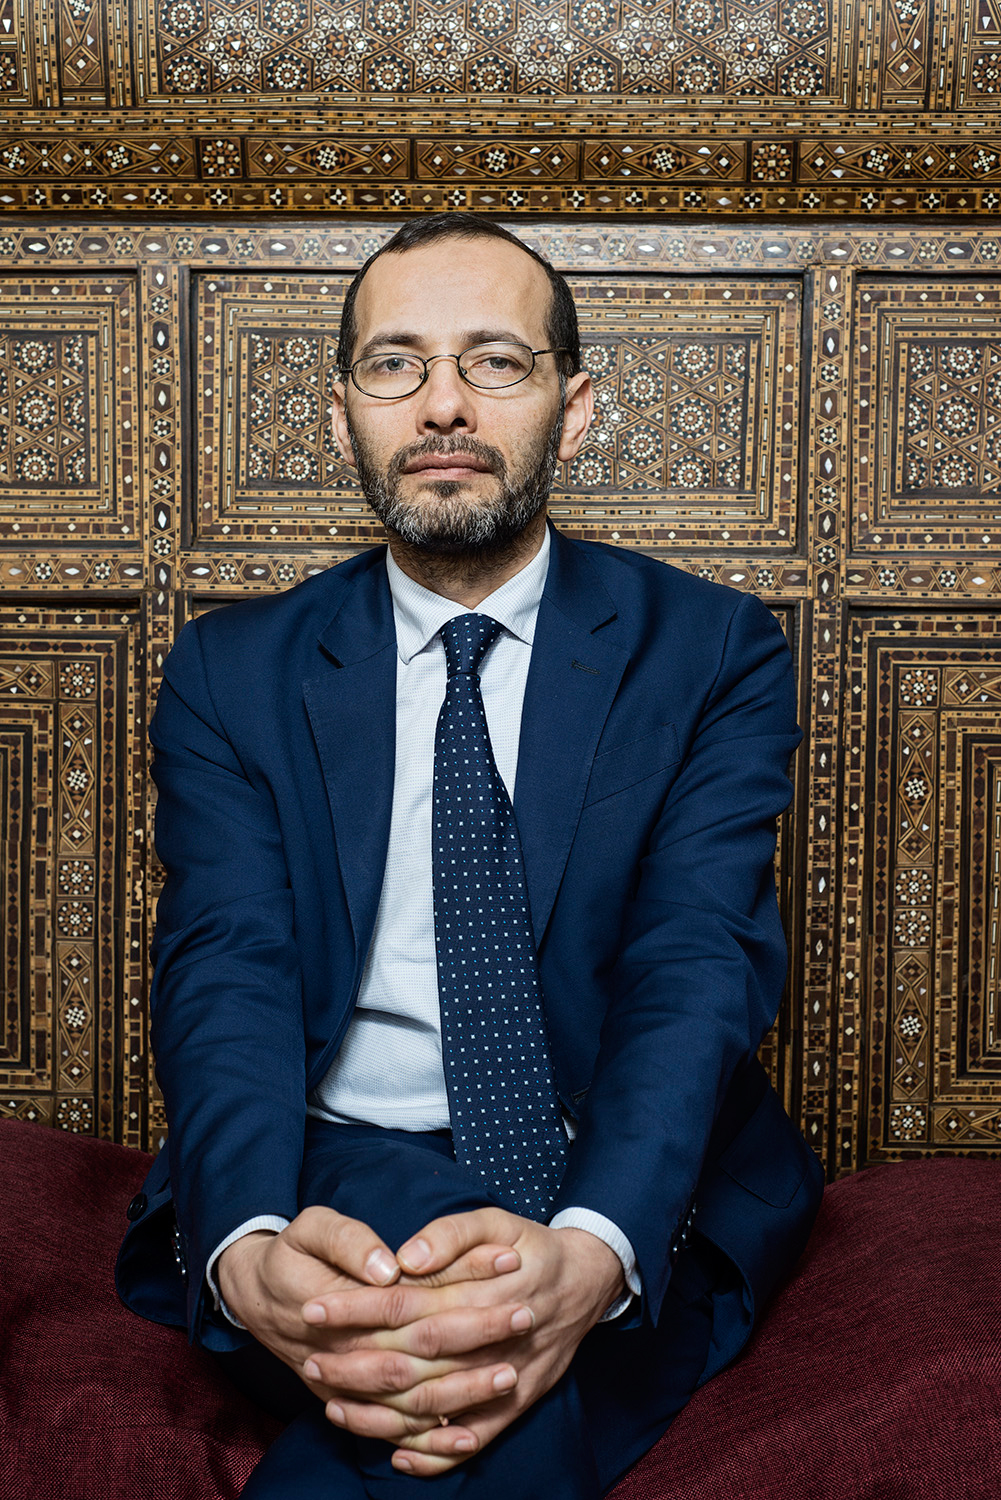 Izzedin Elzir (b. 1971, Hebron), Imam of Florence, President of the Union of  Islamic Communities in Italy. March 2015, Florence, Italy. For GQ Italia.